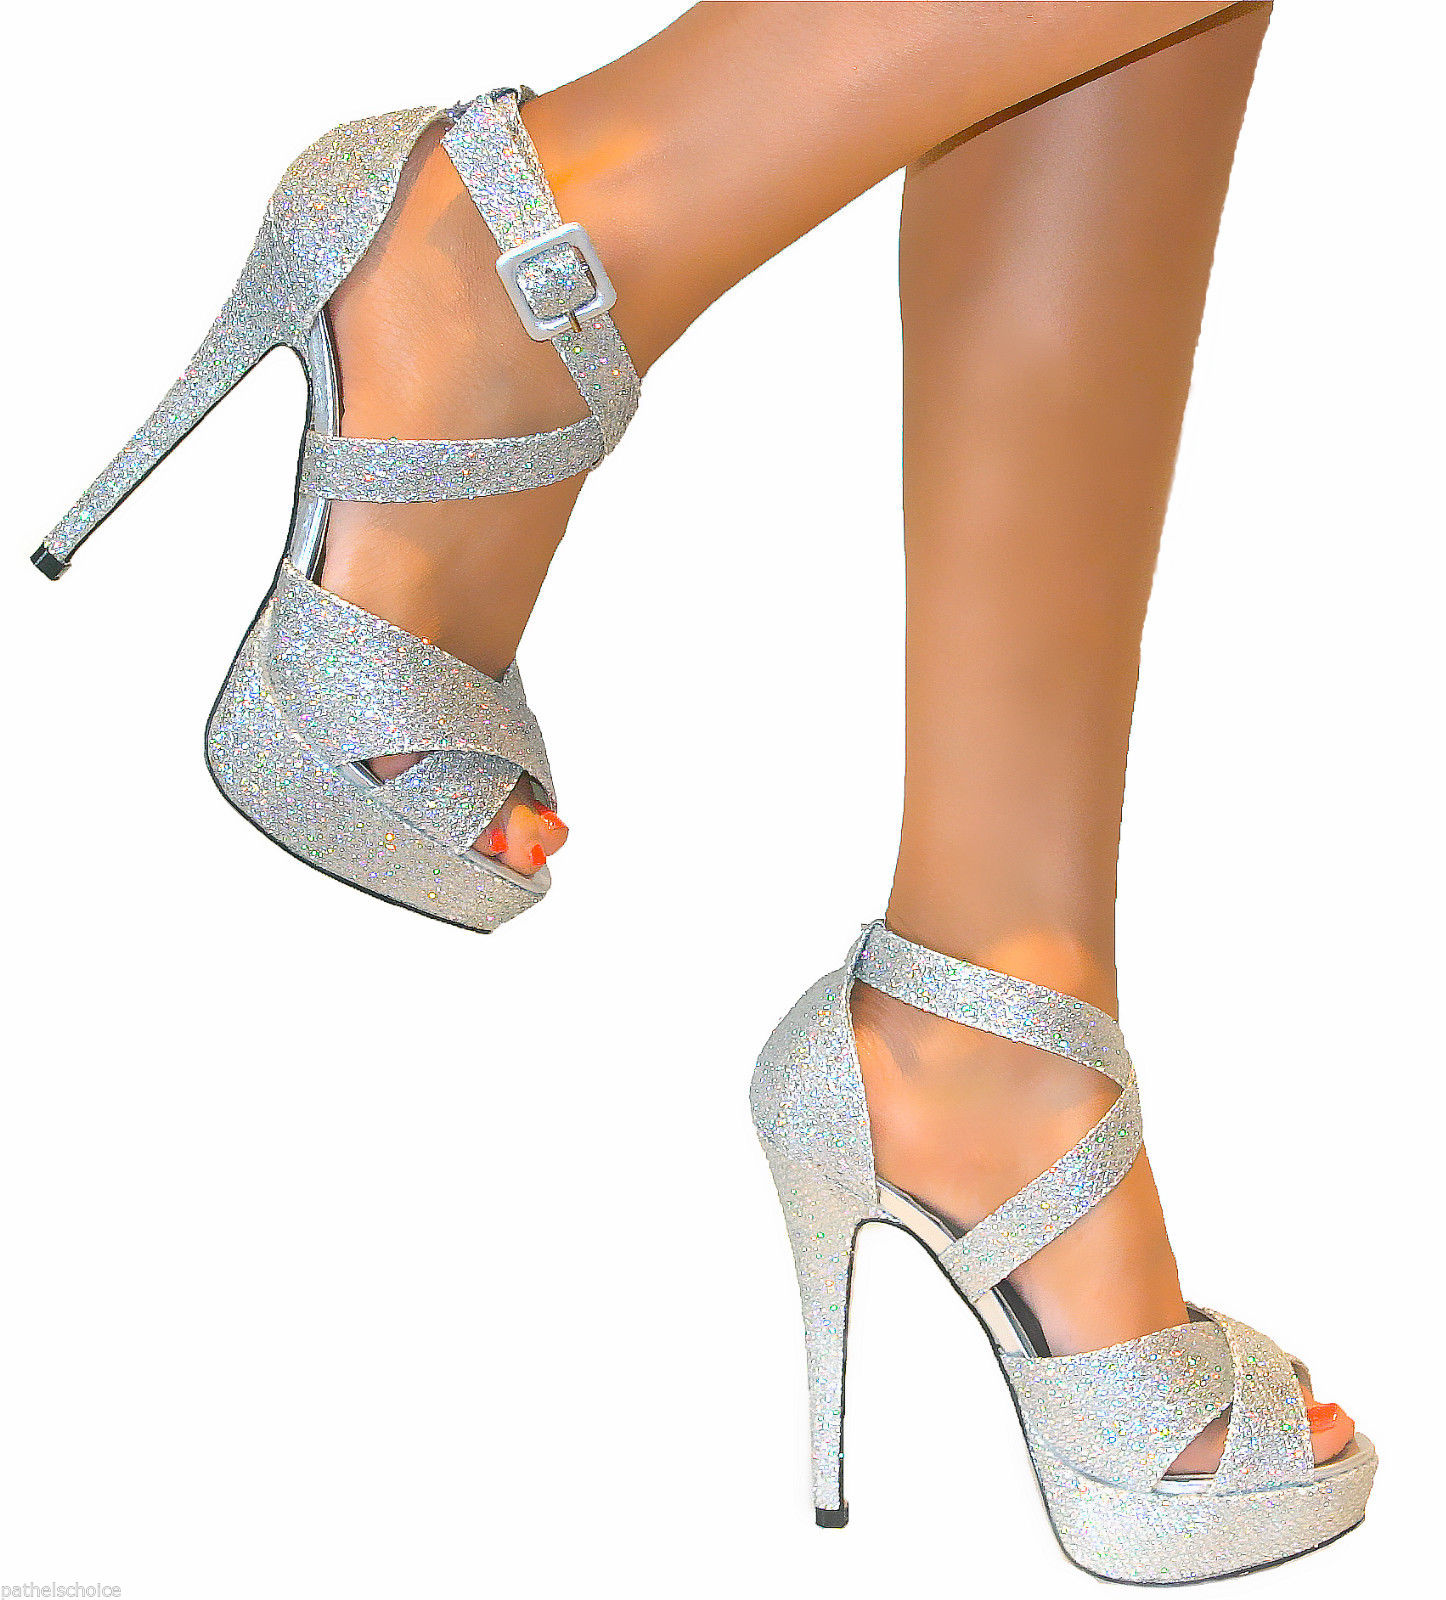 ladies silver strappy stiletto heels platform shoe sandal evening prom sizes 3 8 ebay. Black Bedroom Furniture Sets. Home Design Ideas